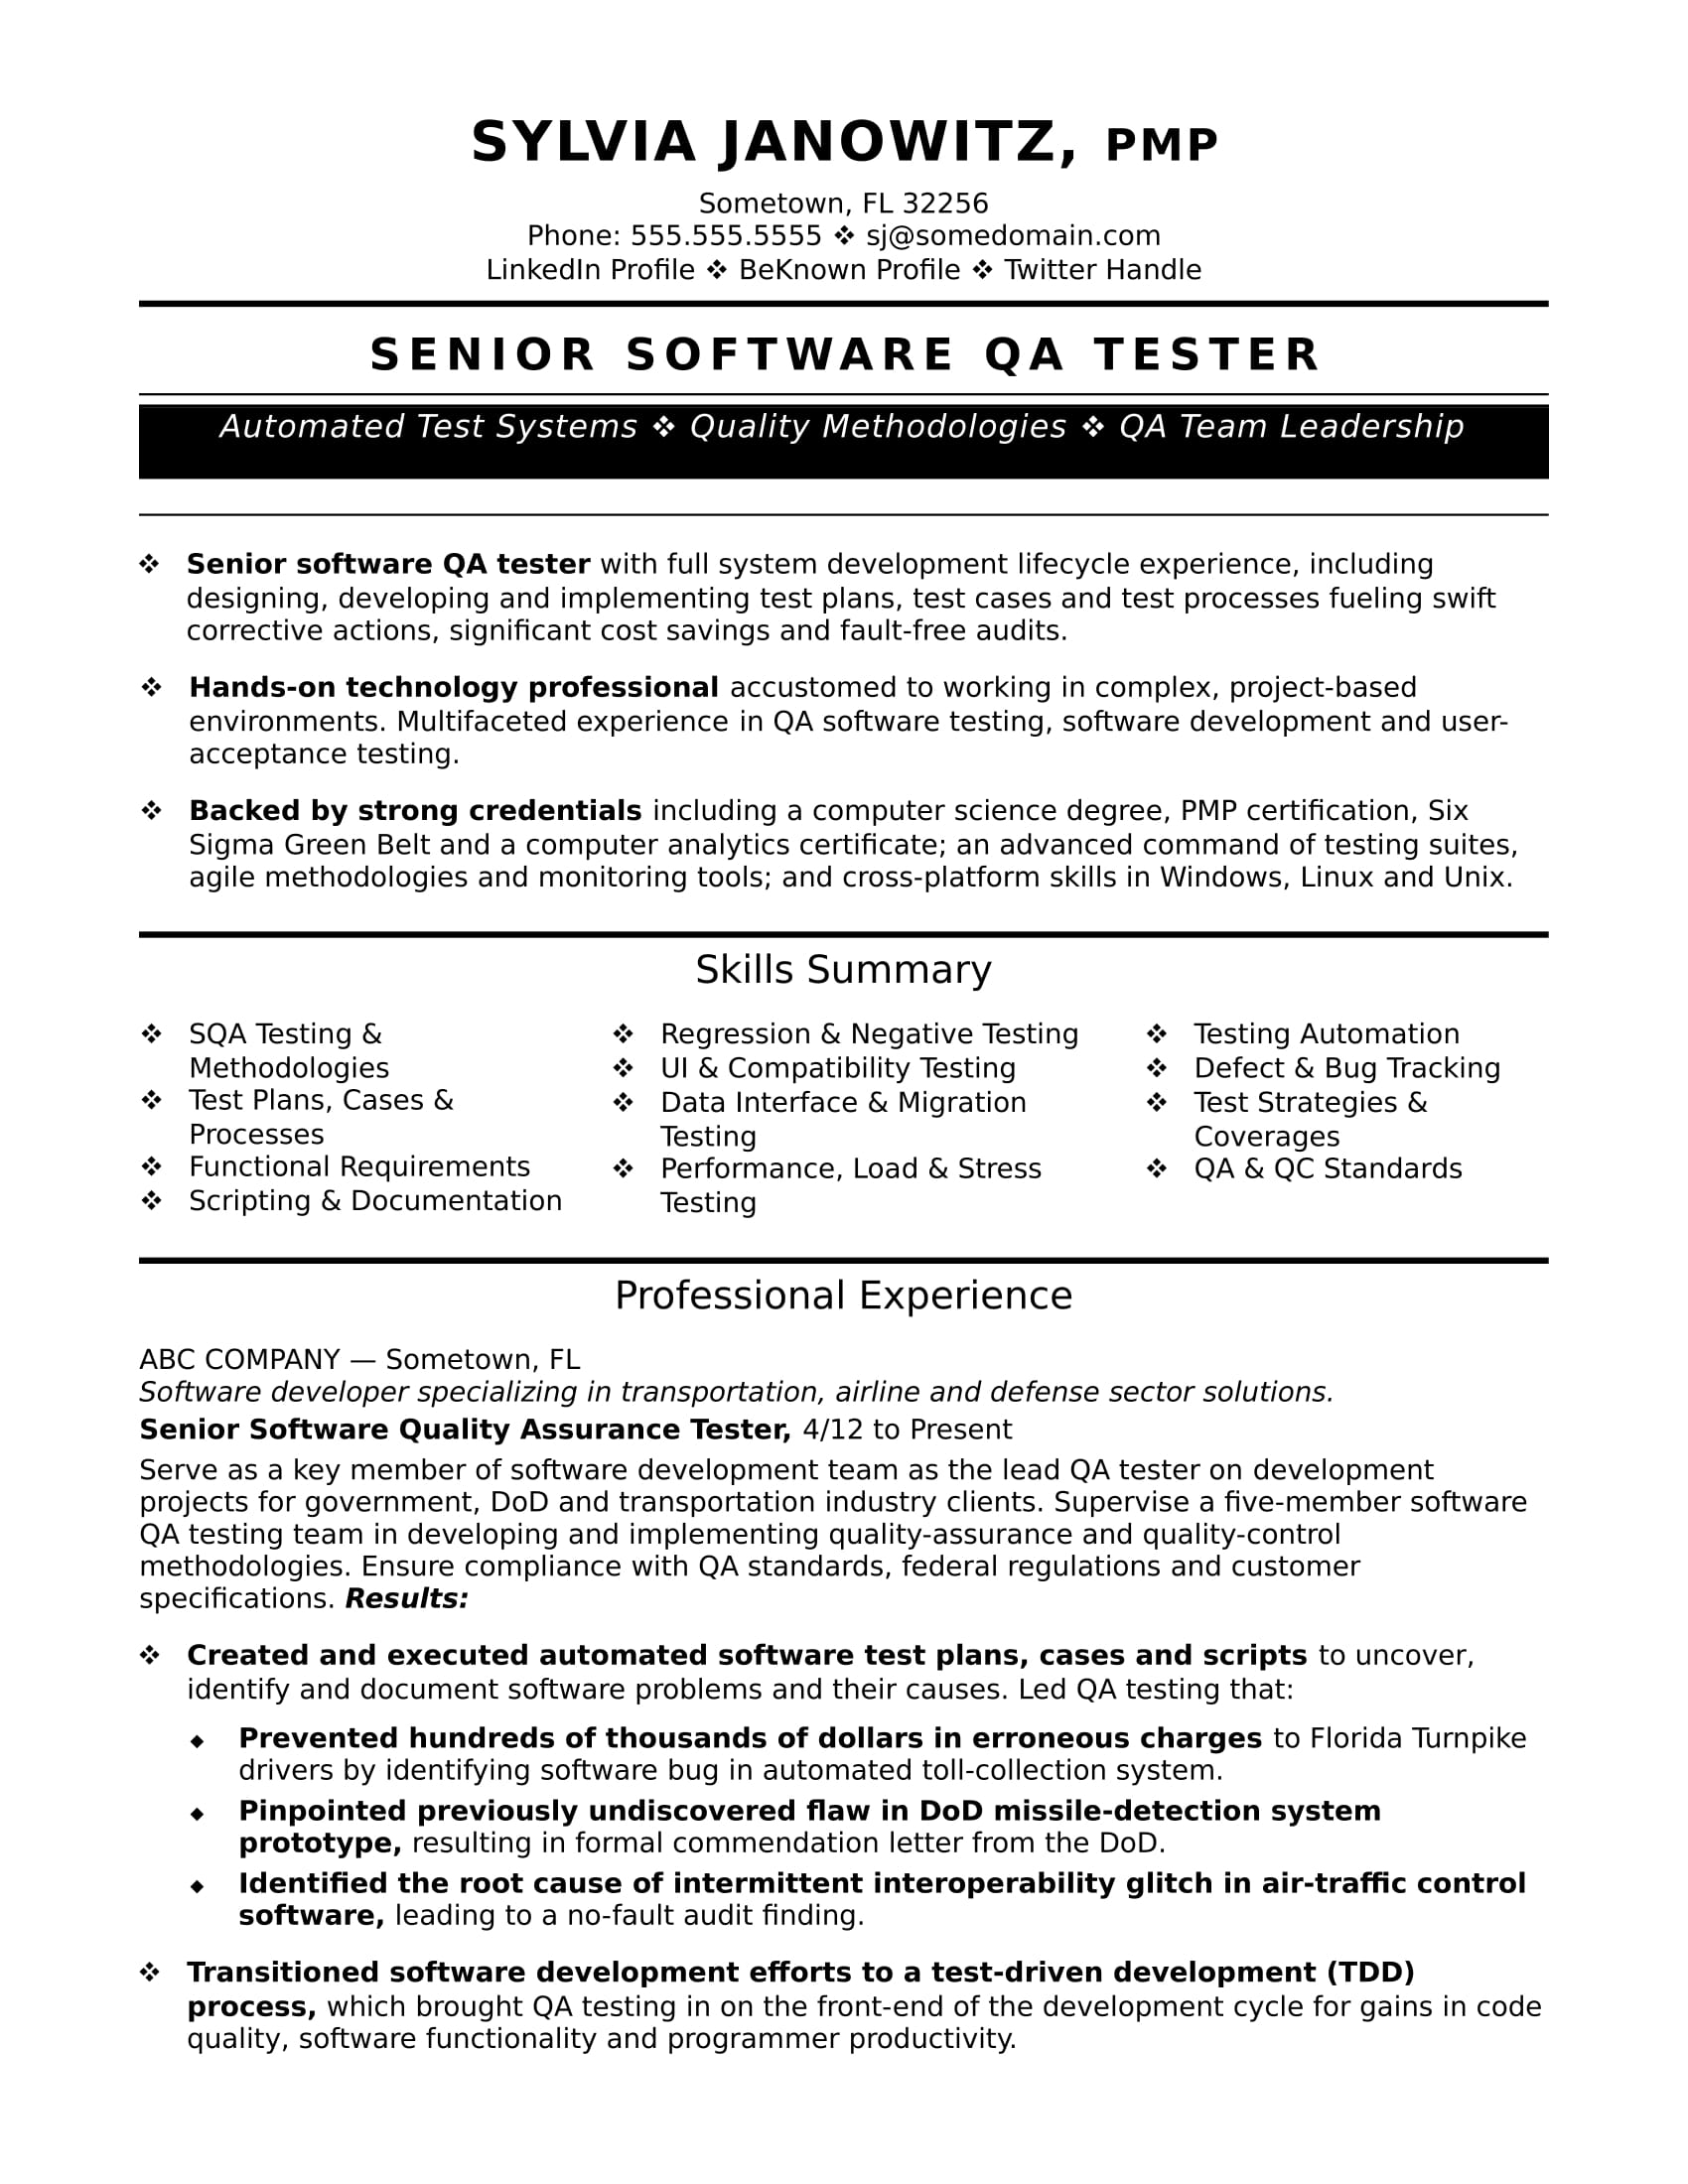 Experienced QA Software Tester Resume Sample  Resume Experience